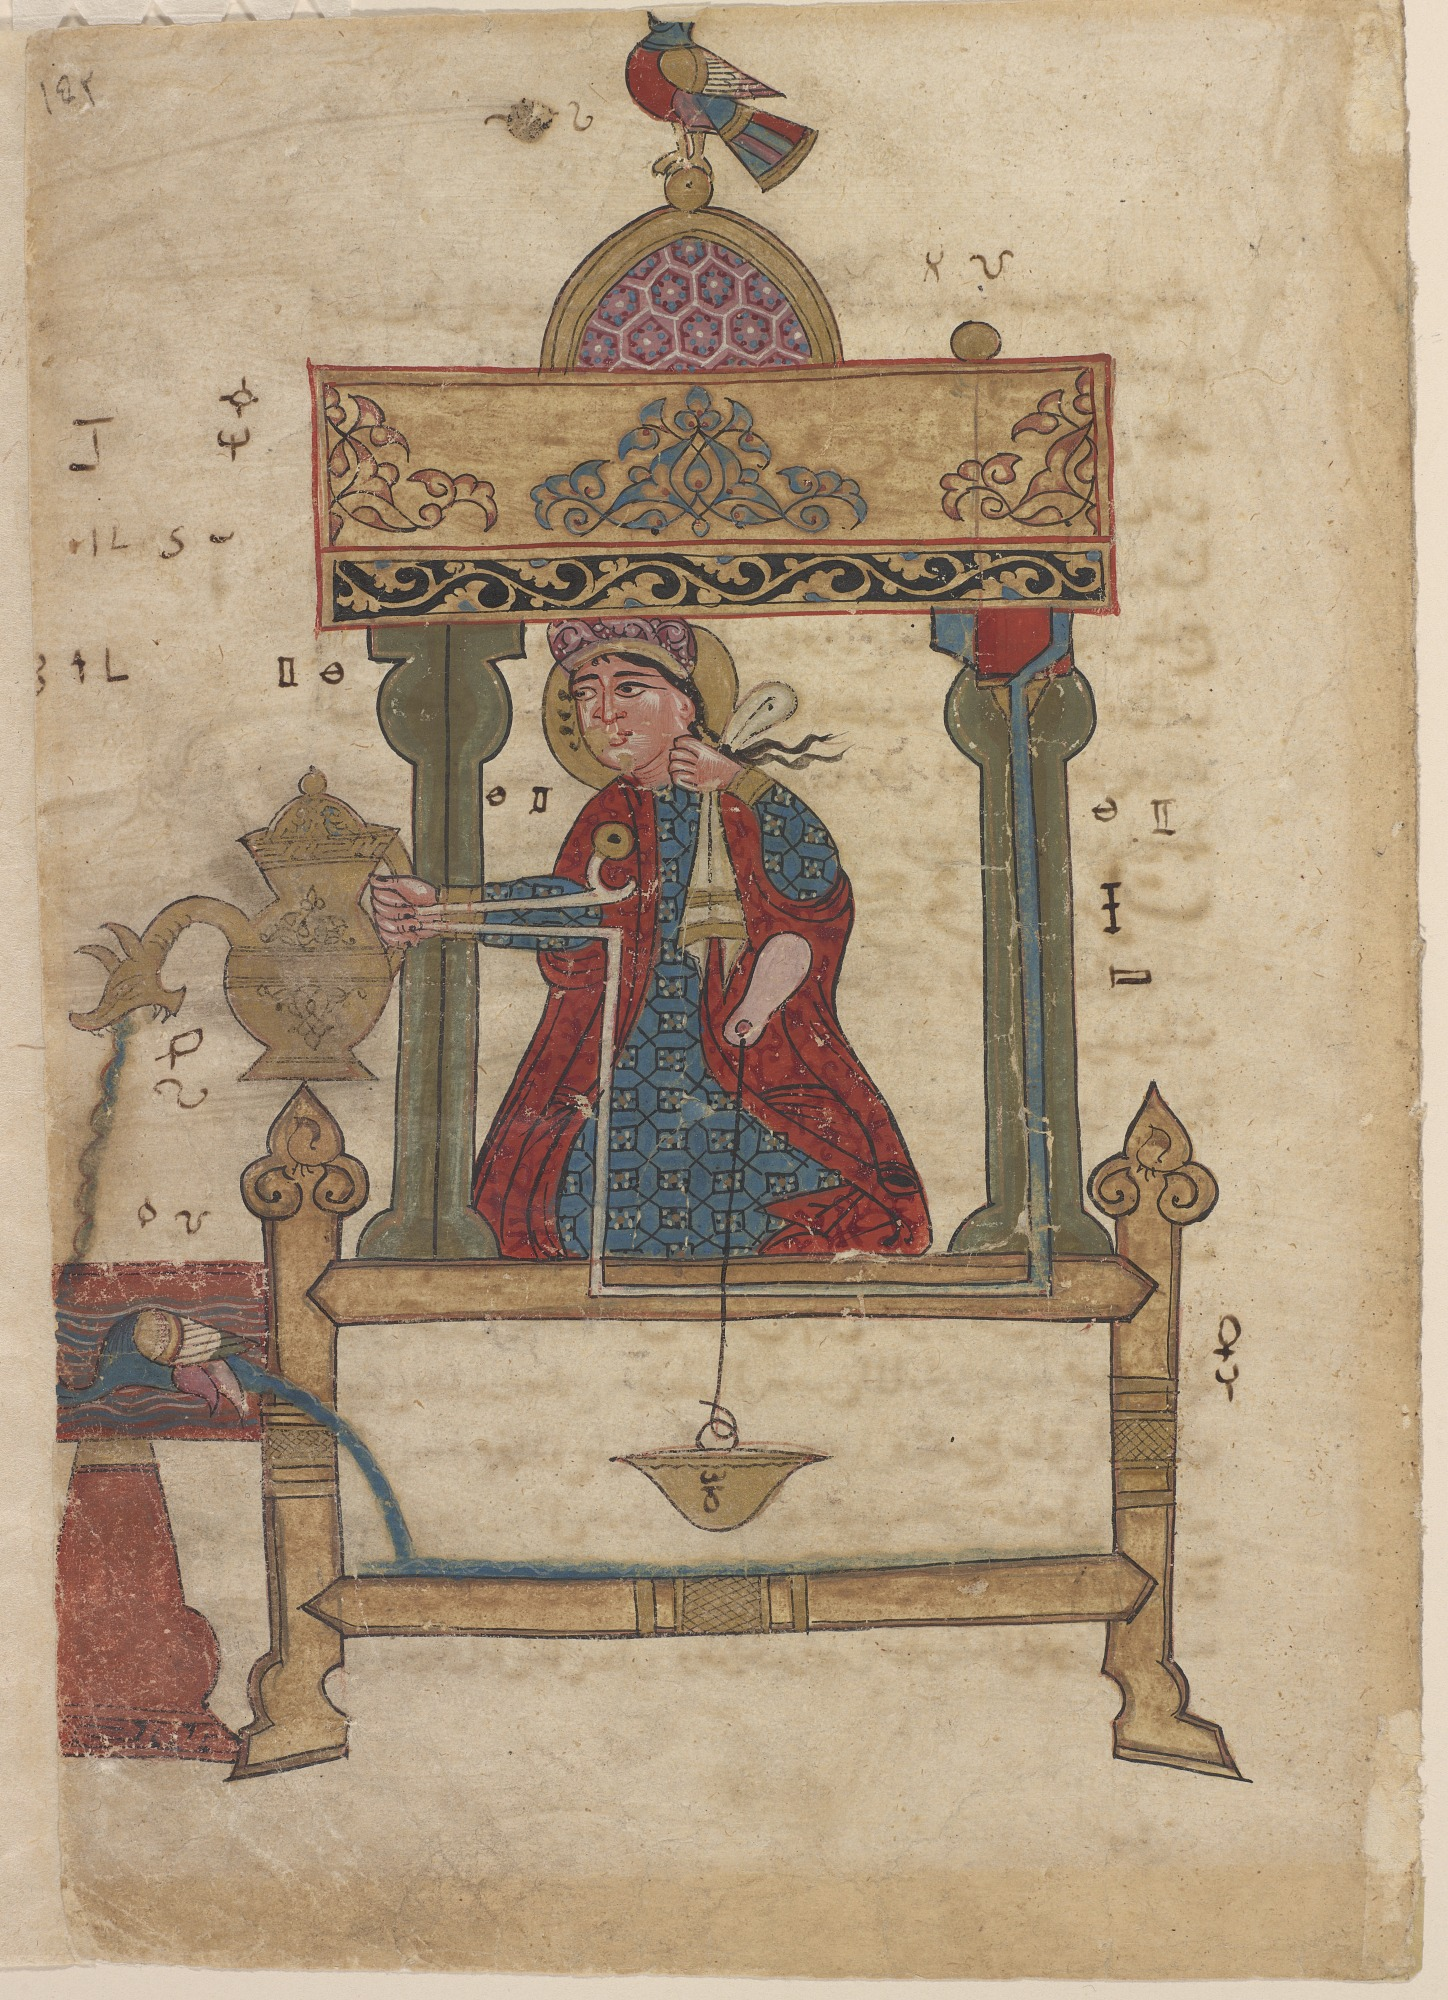 Folio from Kitab fi ma`arifat al-hiyal al-handisaya (The book of knowledge of ingenious mechanical devices) Automata by al-Jazari (d.1206); recto: A hand-washing device in the form of a woman holding a pitcher; verso: text